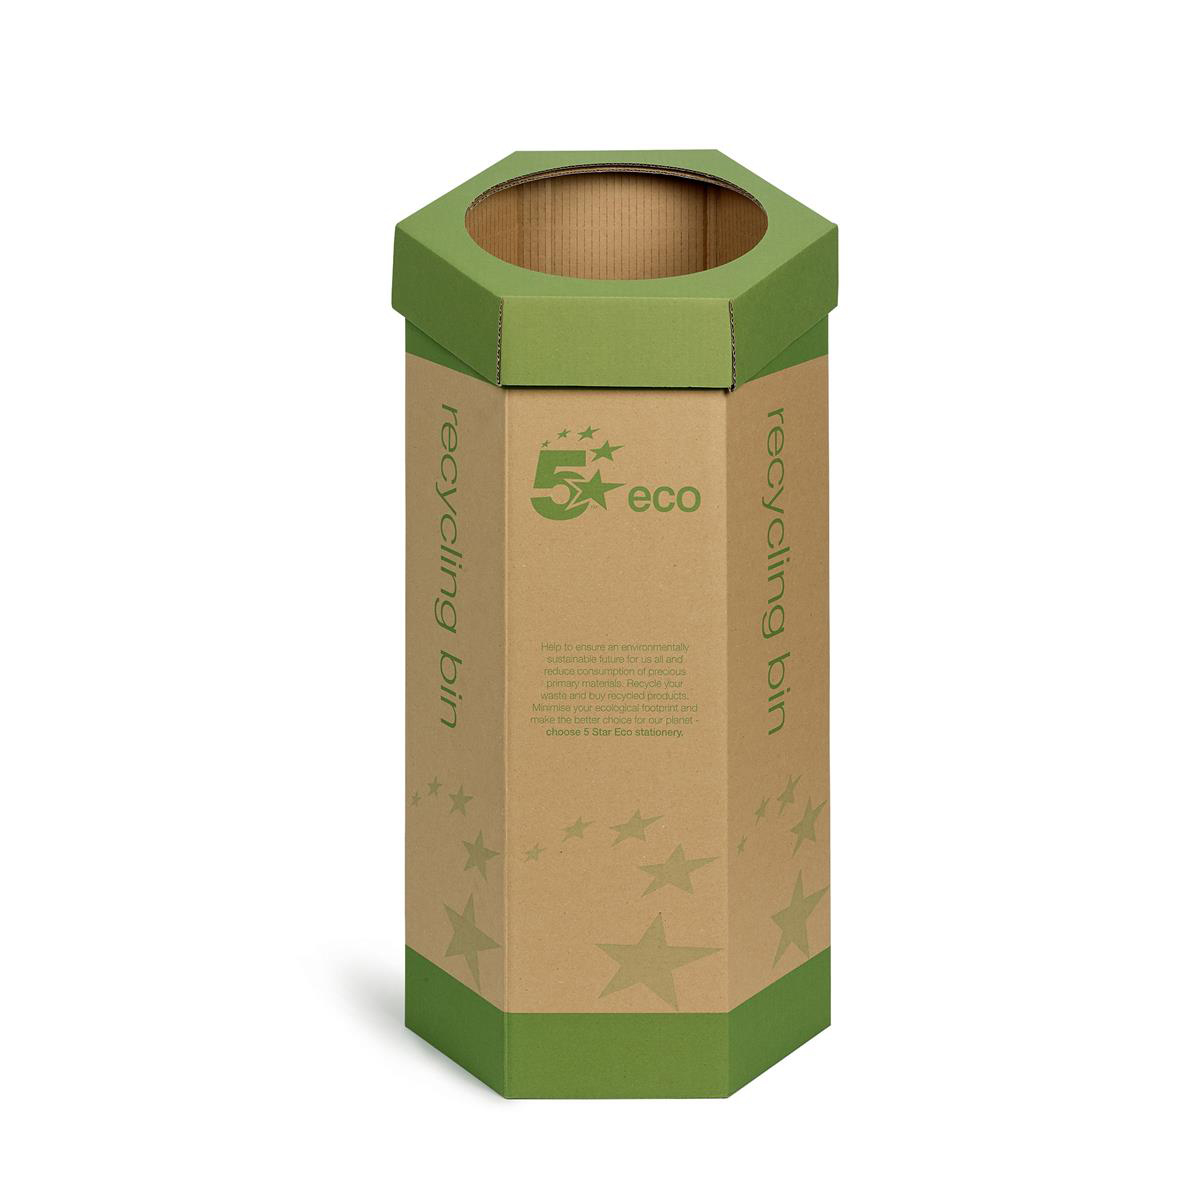 Recycling Bins 5 Star Eco Recycling Bin for Paper 120 Litres Base of 355mm Height of 679mm Green/Brown Pack 3